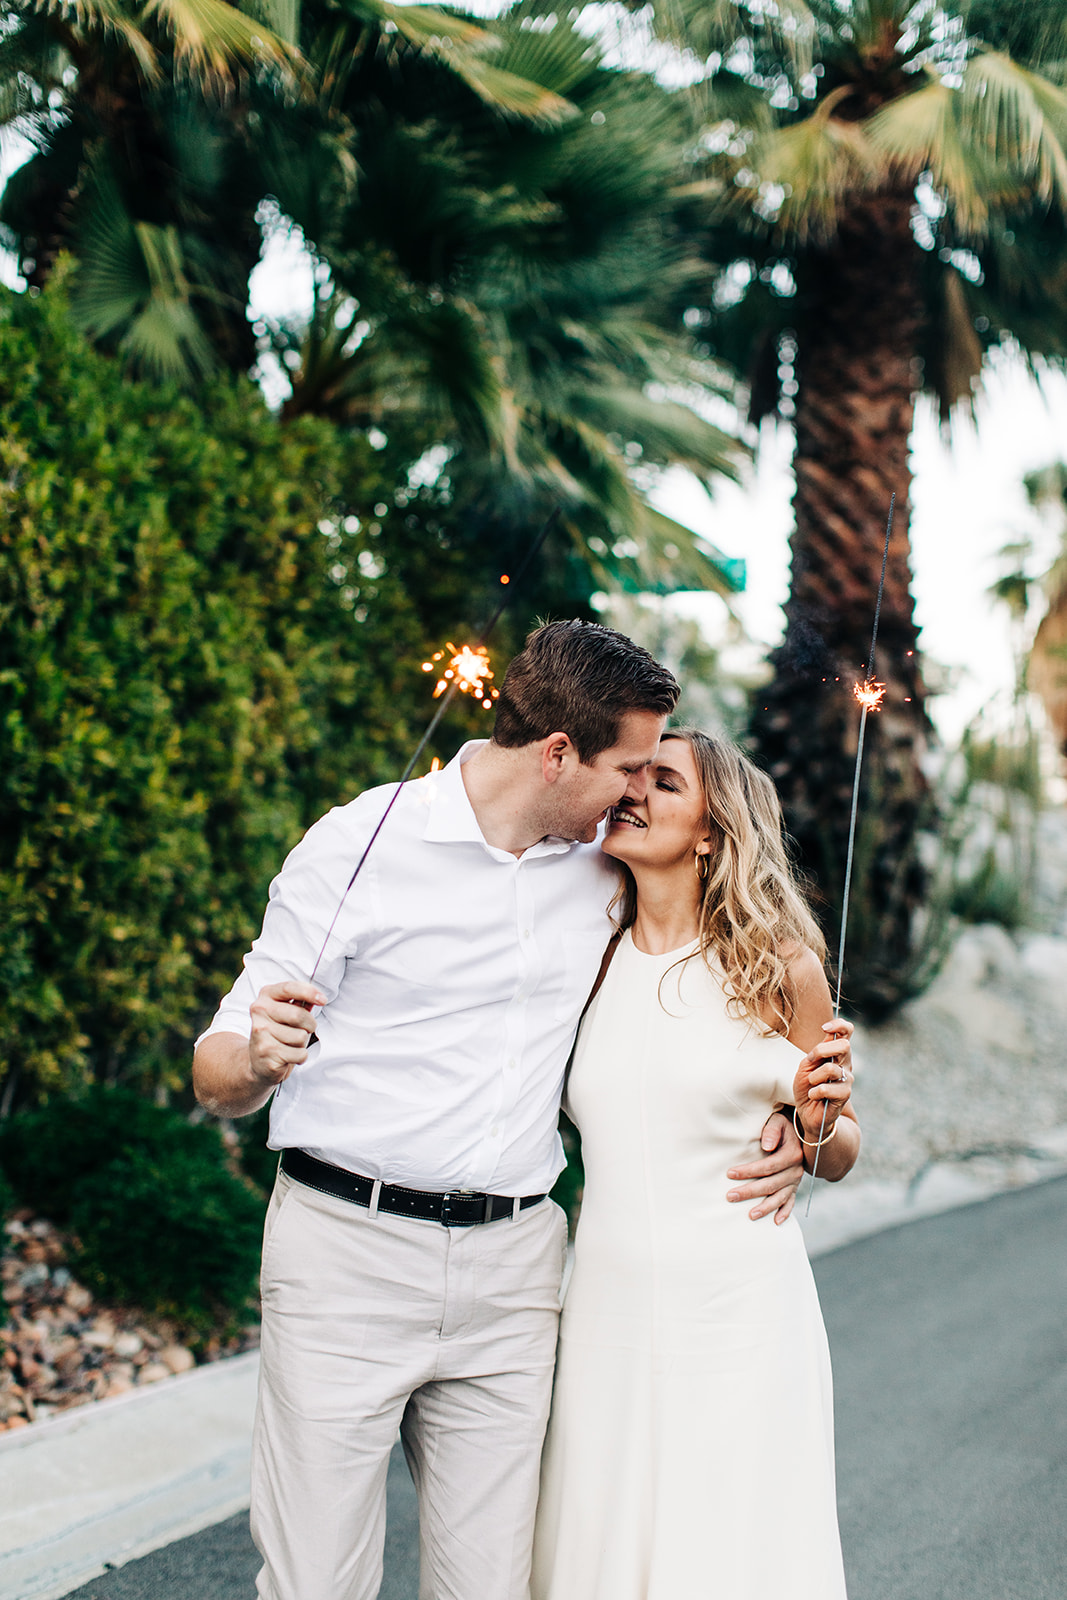 Paulina-Drew_Palm-Springs-Engagement-Photos_Clarisse-Rae_Southern-California-Wedding-Photographer60.jpg